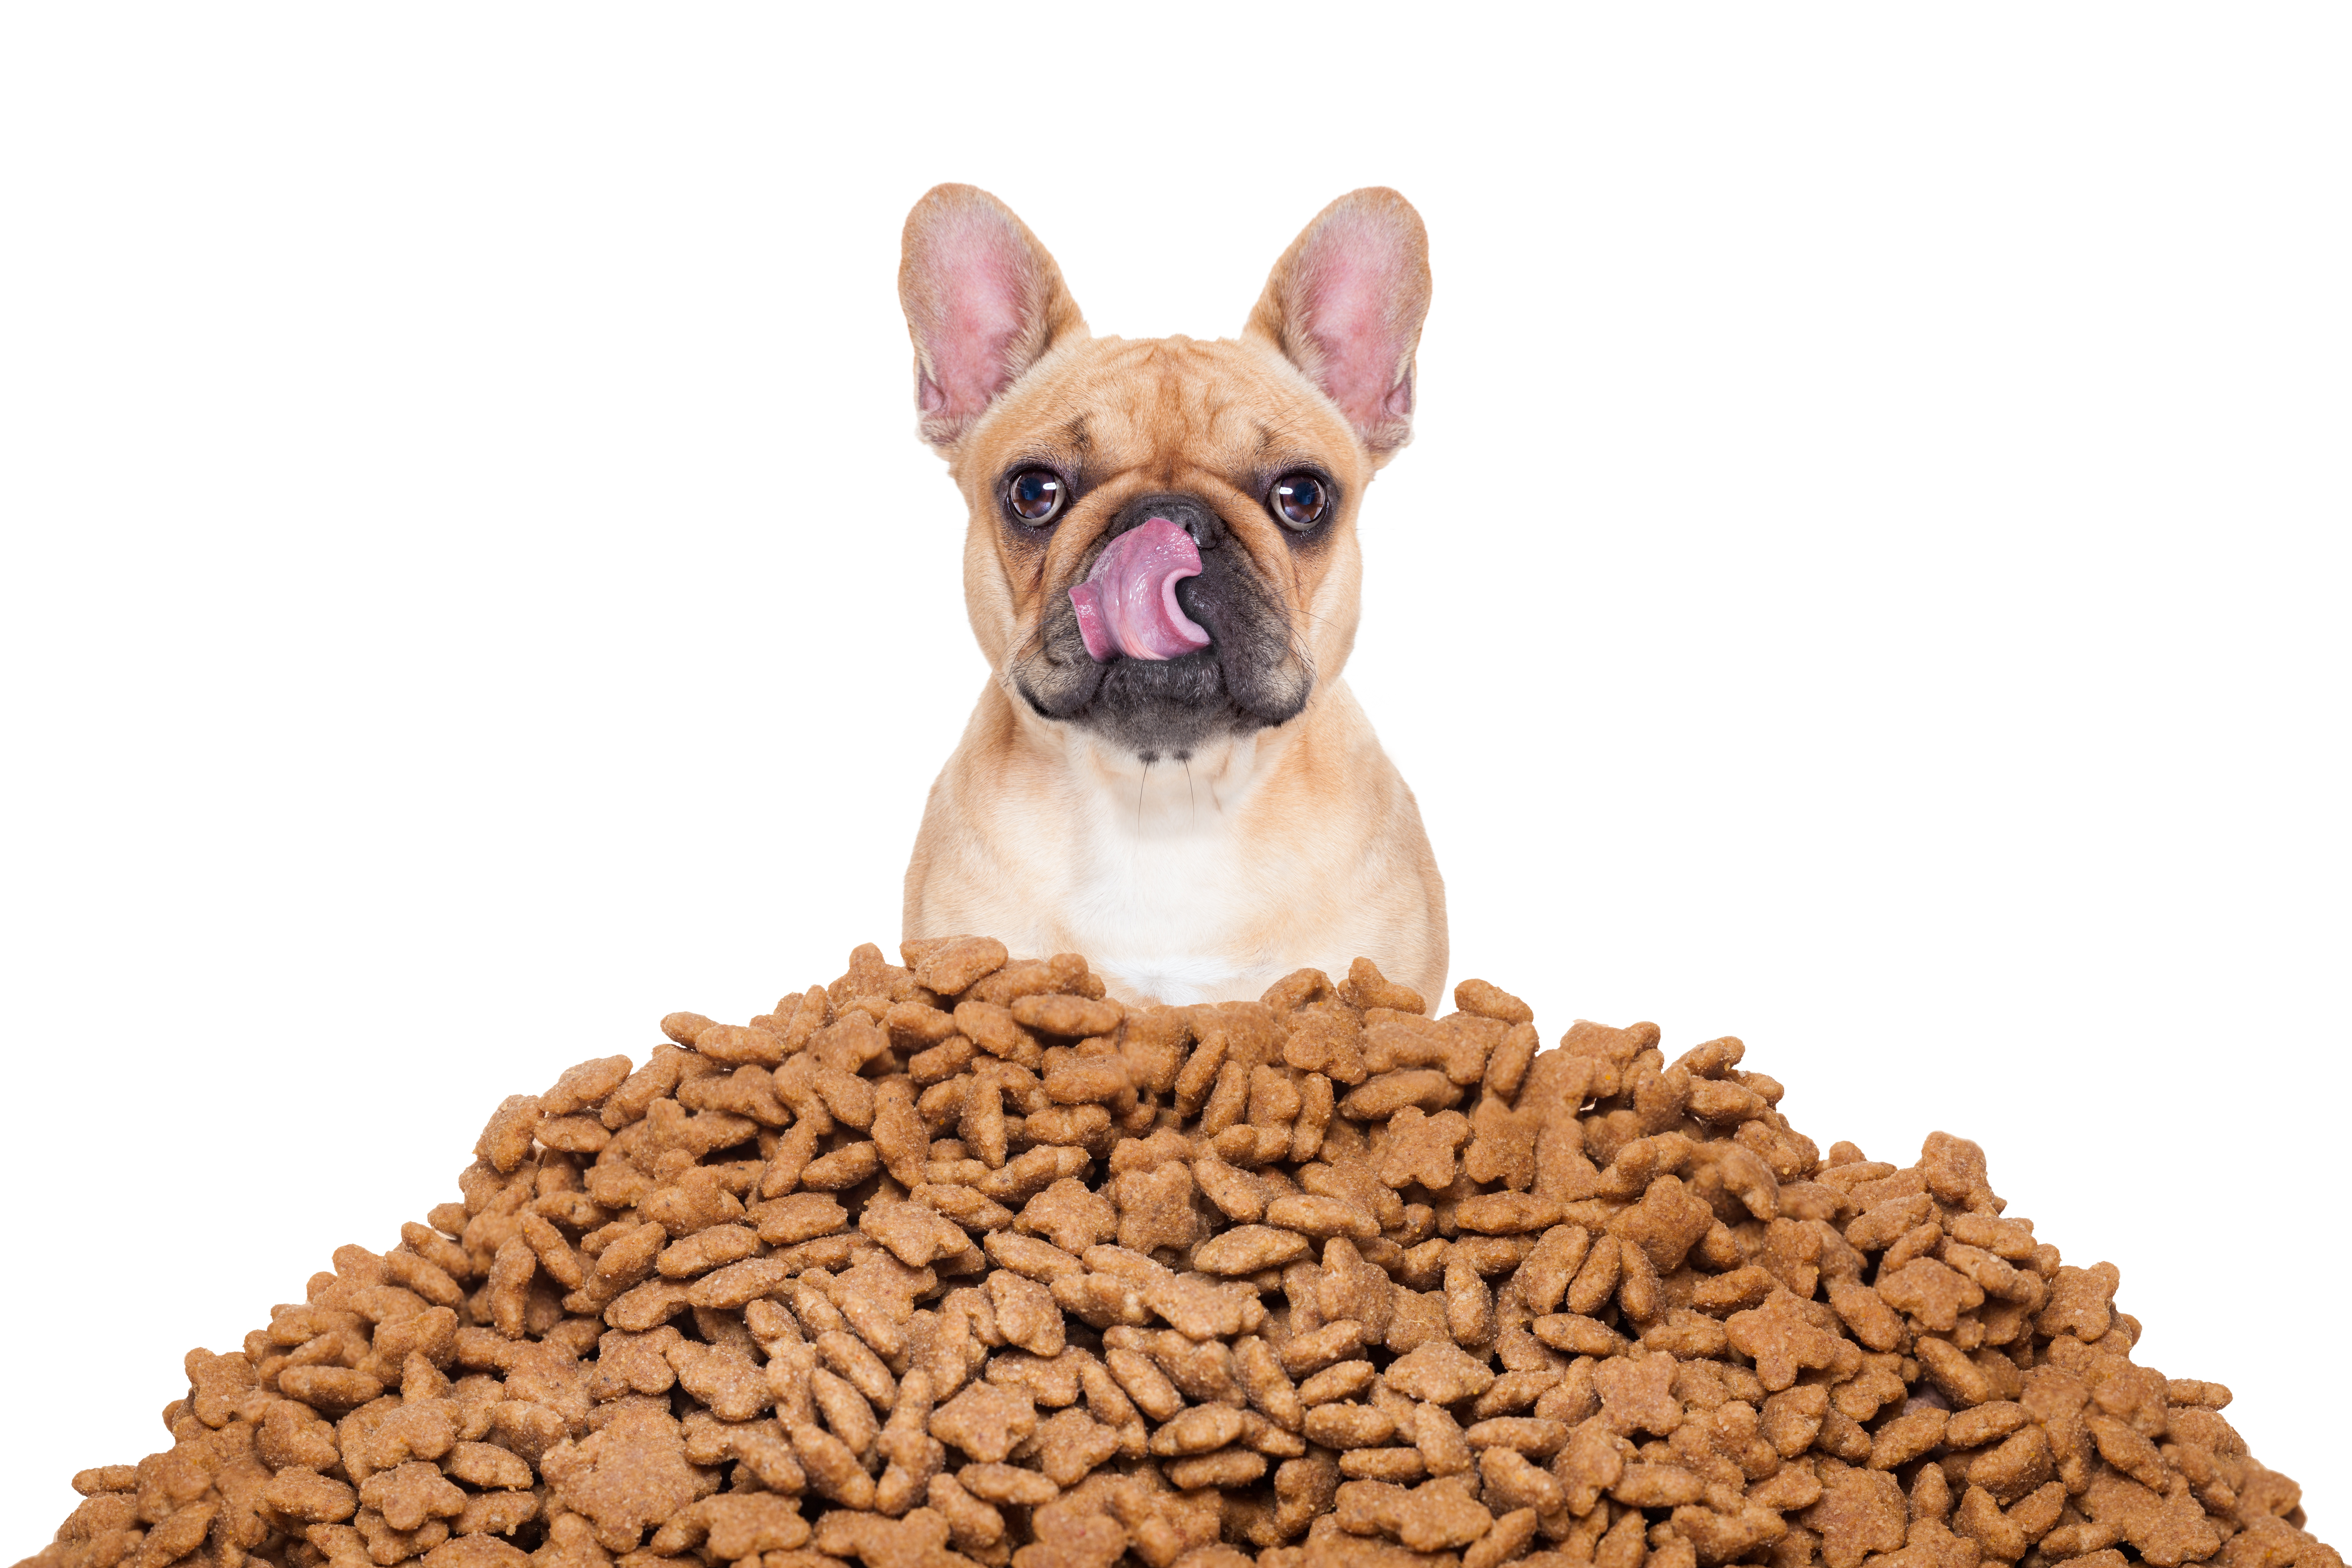 Dog with lots of dog food